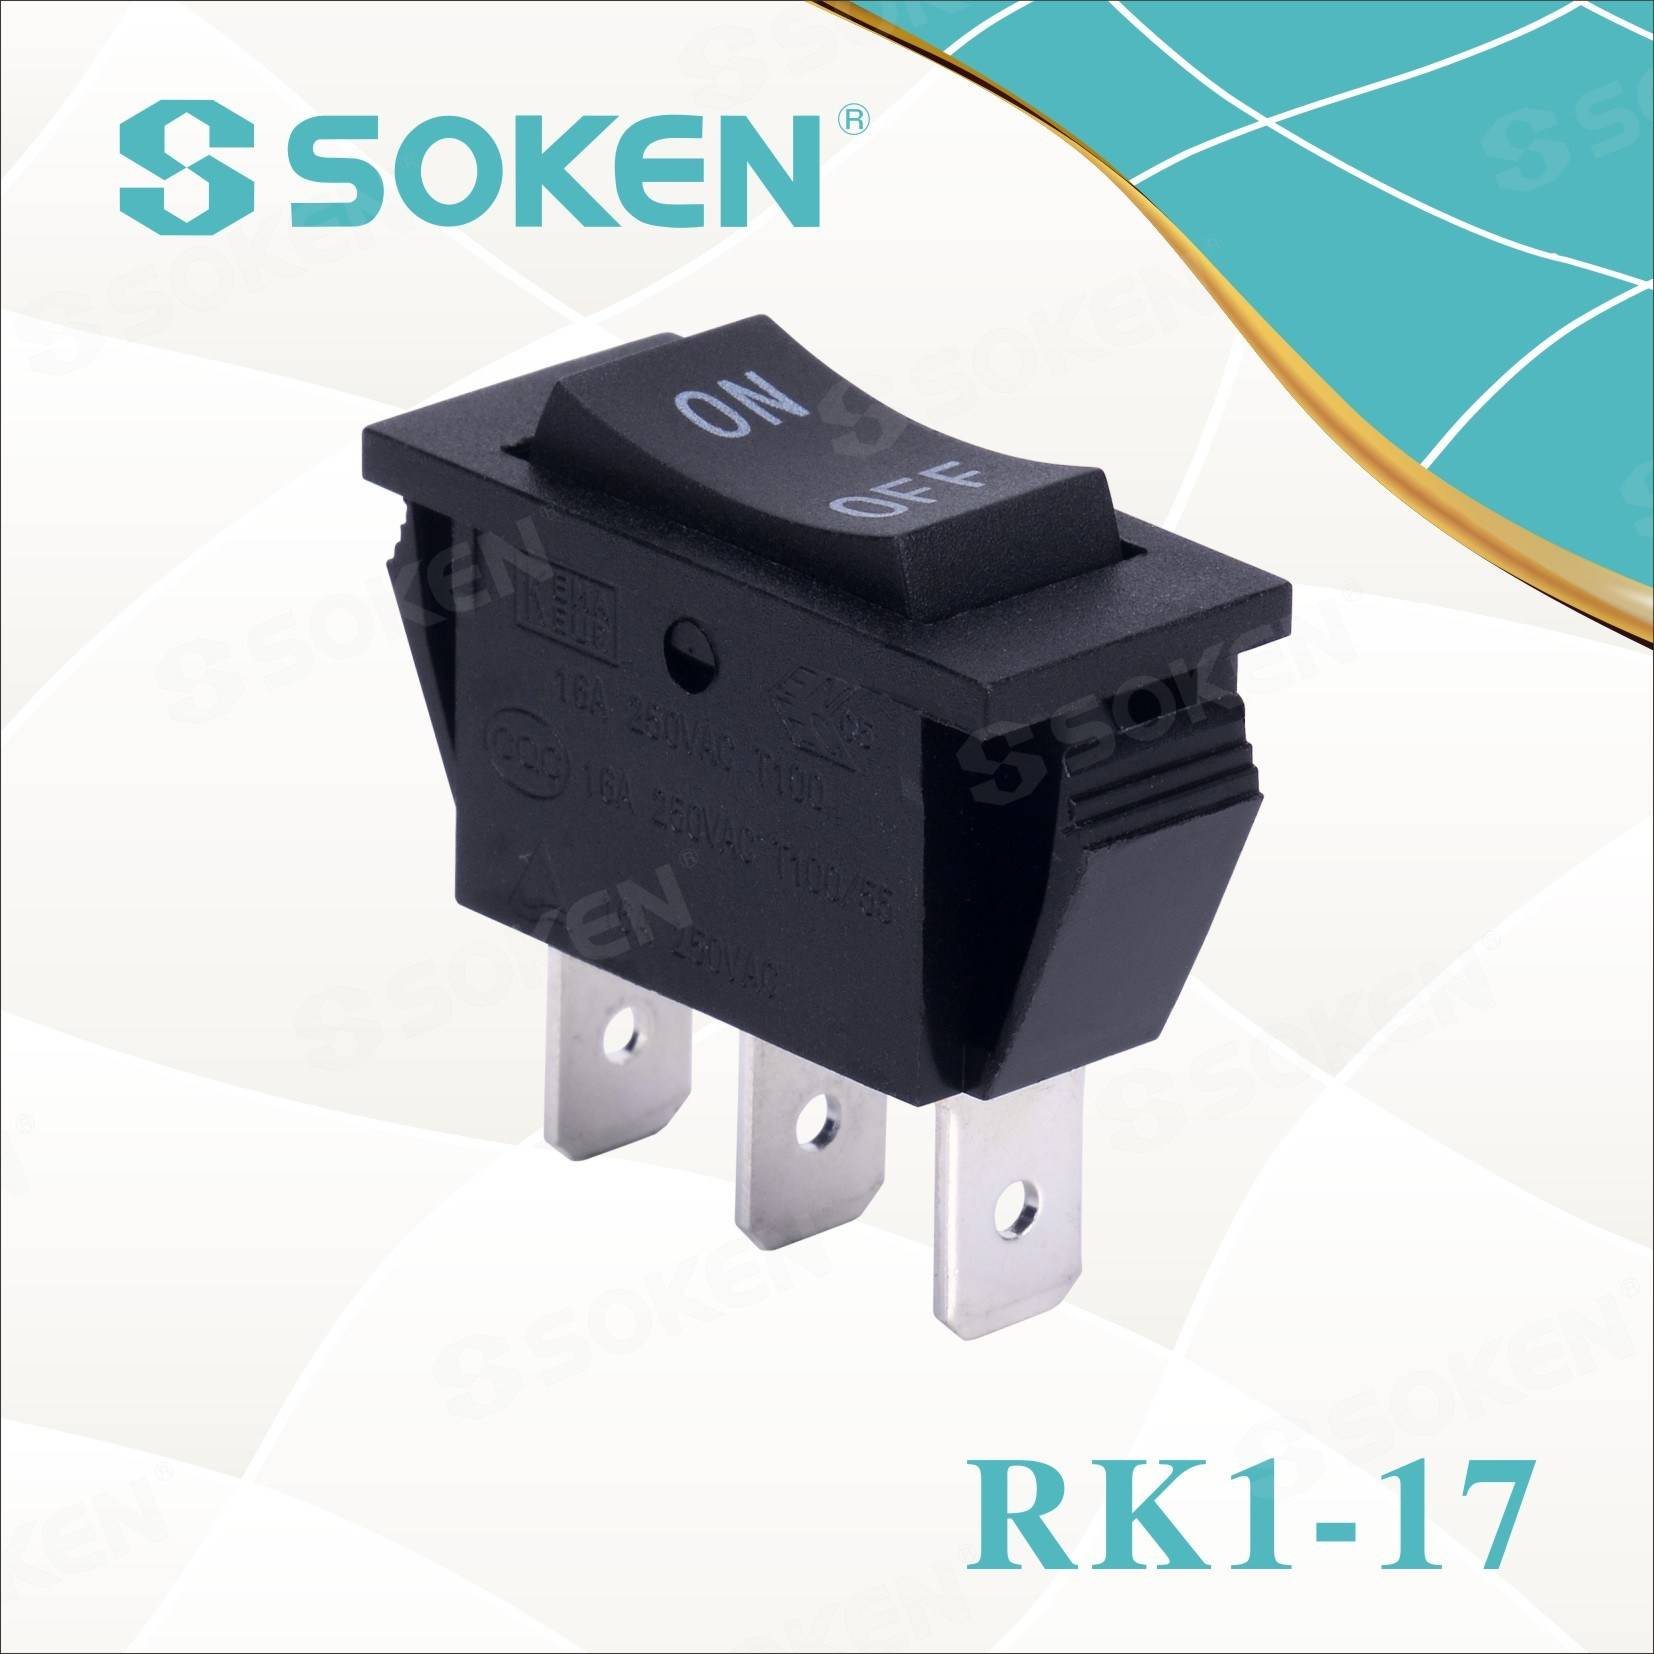 Soken Rk1-17 1X3 ku off ku Rocker 3pins Shintshela